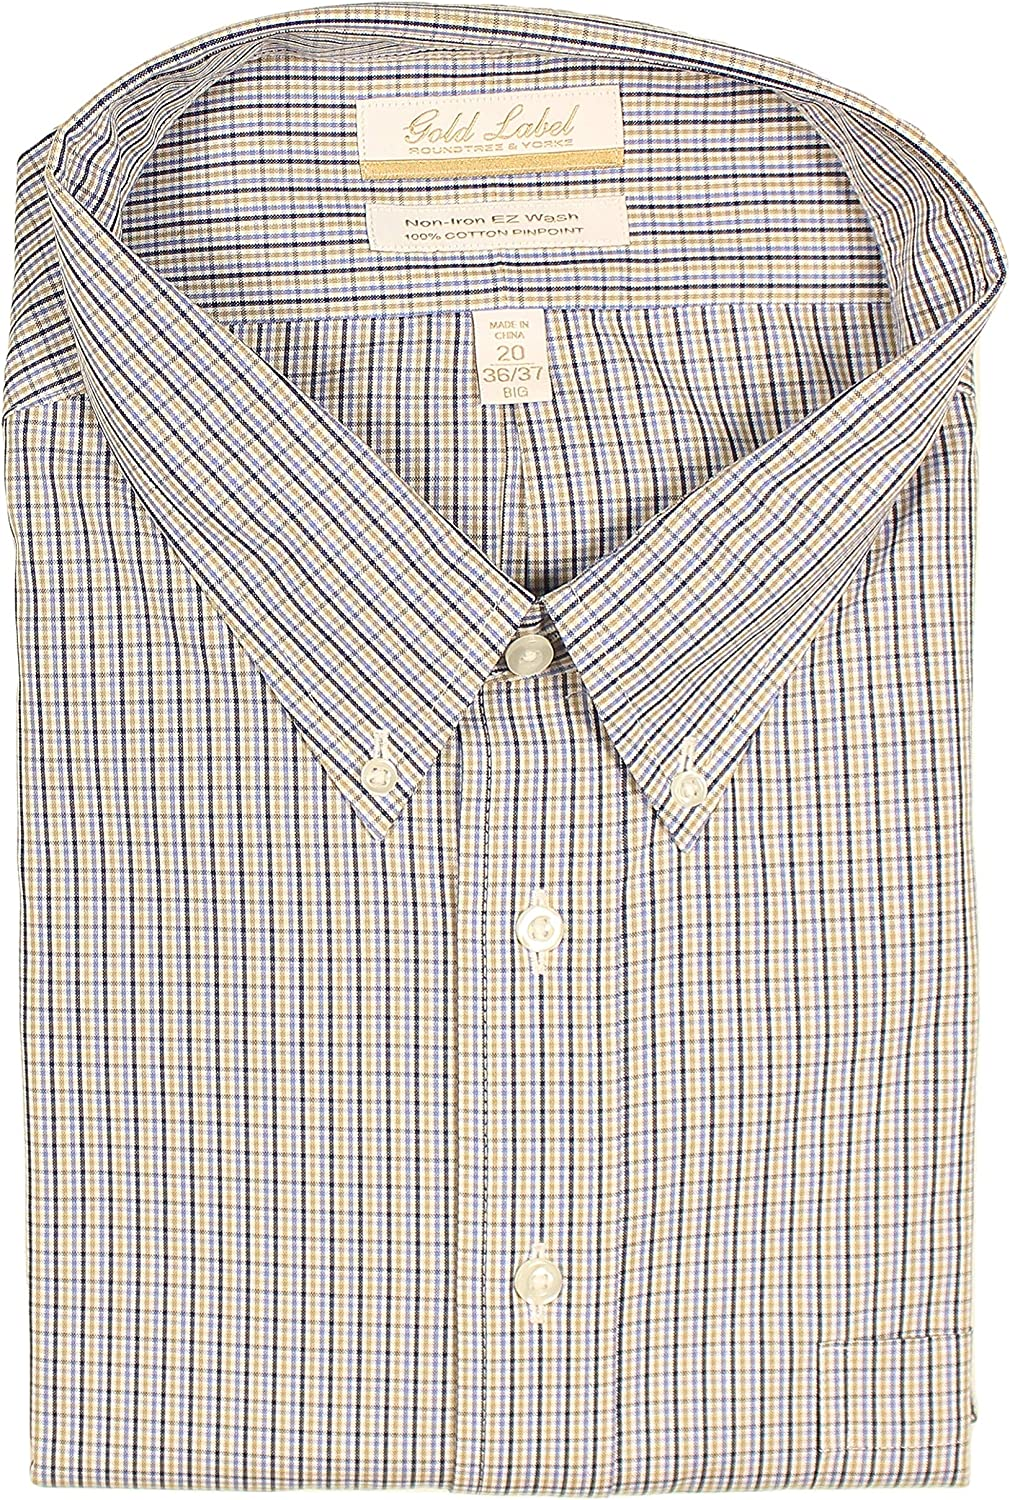 Gold Label Big Tall Non-Iron Wrinkle Resistant Men's Pinpoint Cotton Dress Shirt with Button-Down Collar (Tan Multi 026 & Blue, 20 x 36/37 Big)